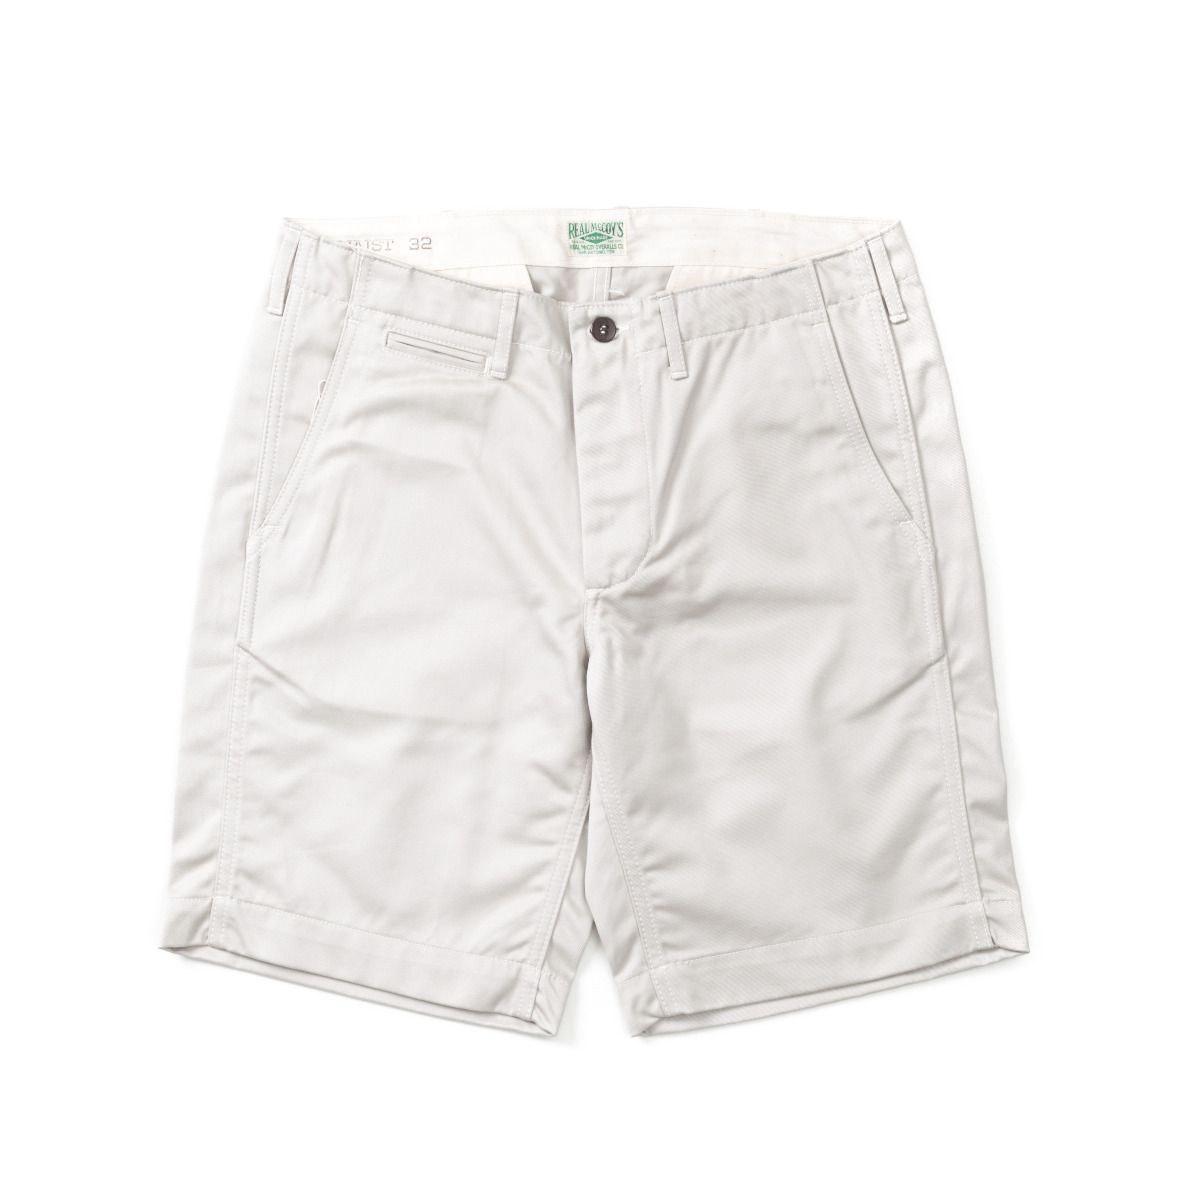 Blue Seal Cotton Shorts